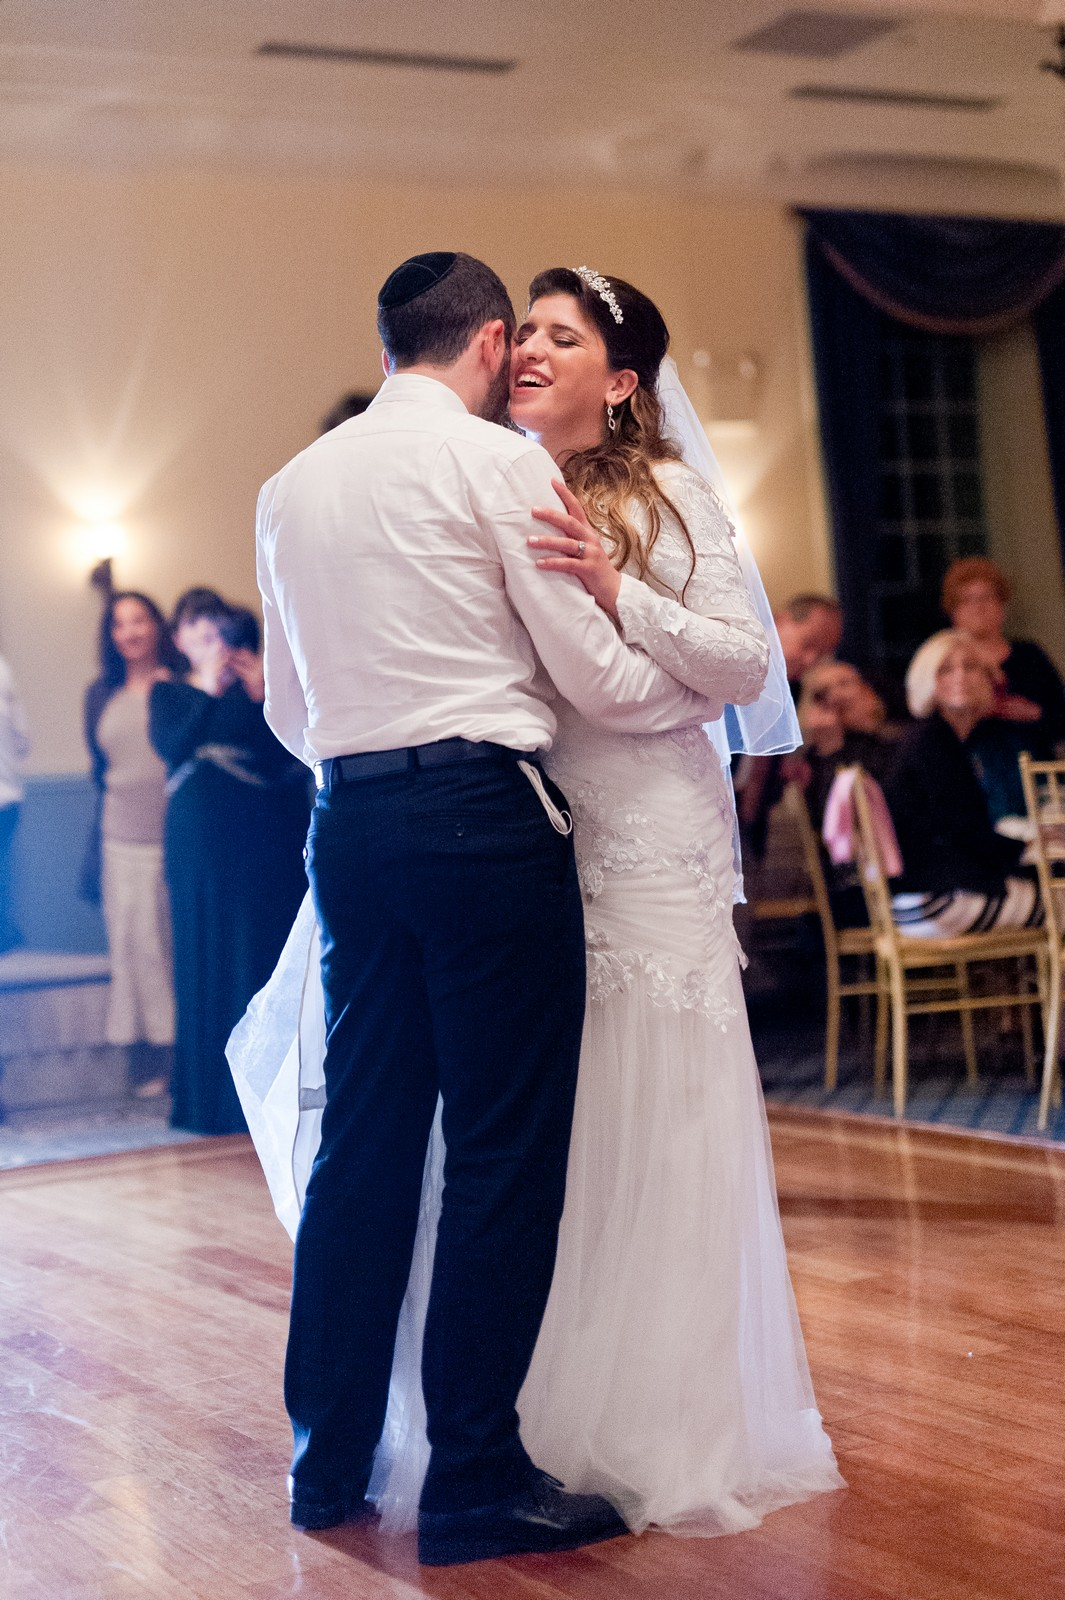 Orthodox Jewish Wedding, Dyker Beach Park and Golf Course, Brooklyn, New York, Photo by Chaim Schvarcz, Bride and Groom, Dancing, First dance